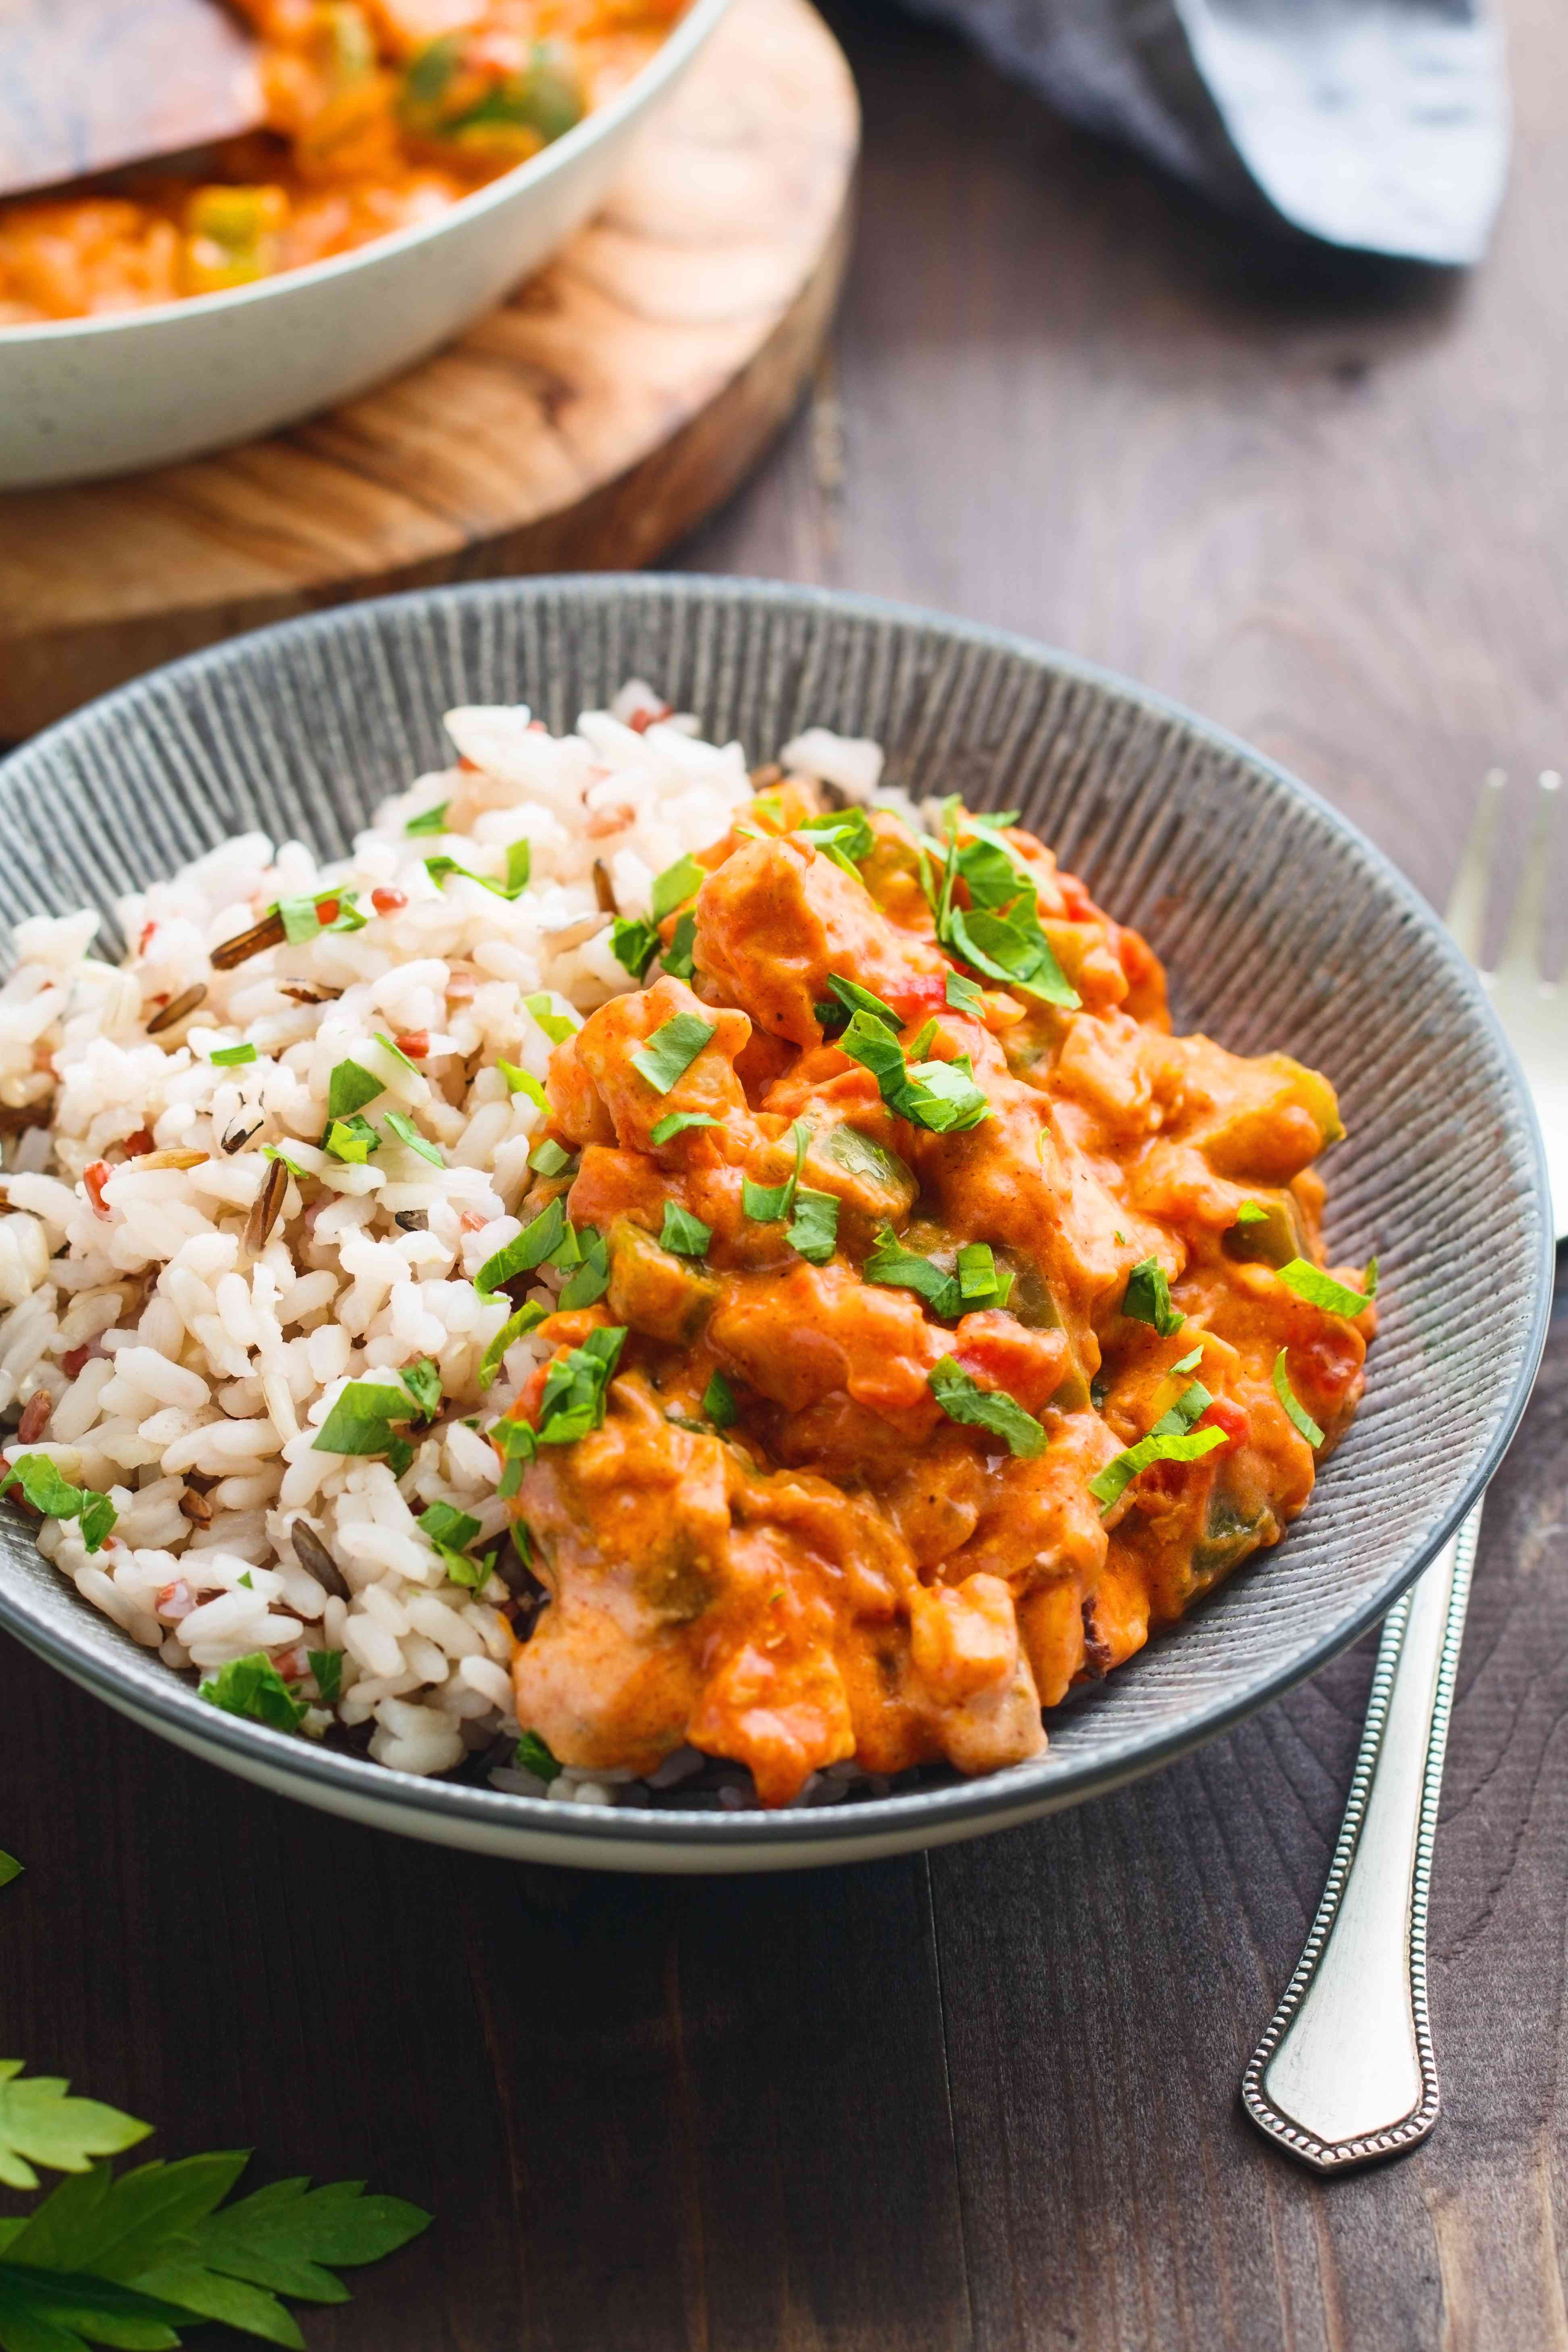 Portion Hungarian chicken paprikash in bowls with rice